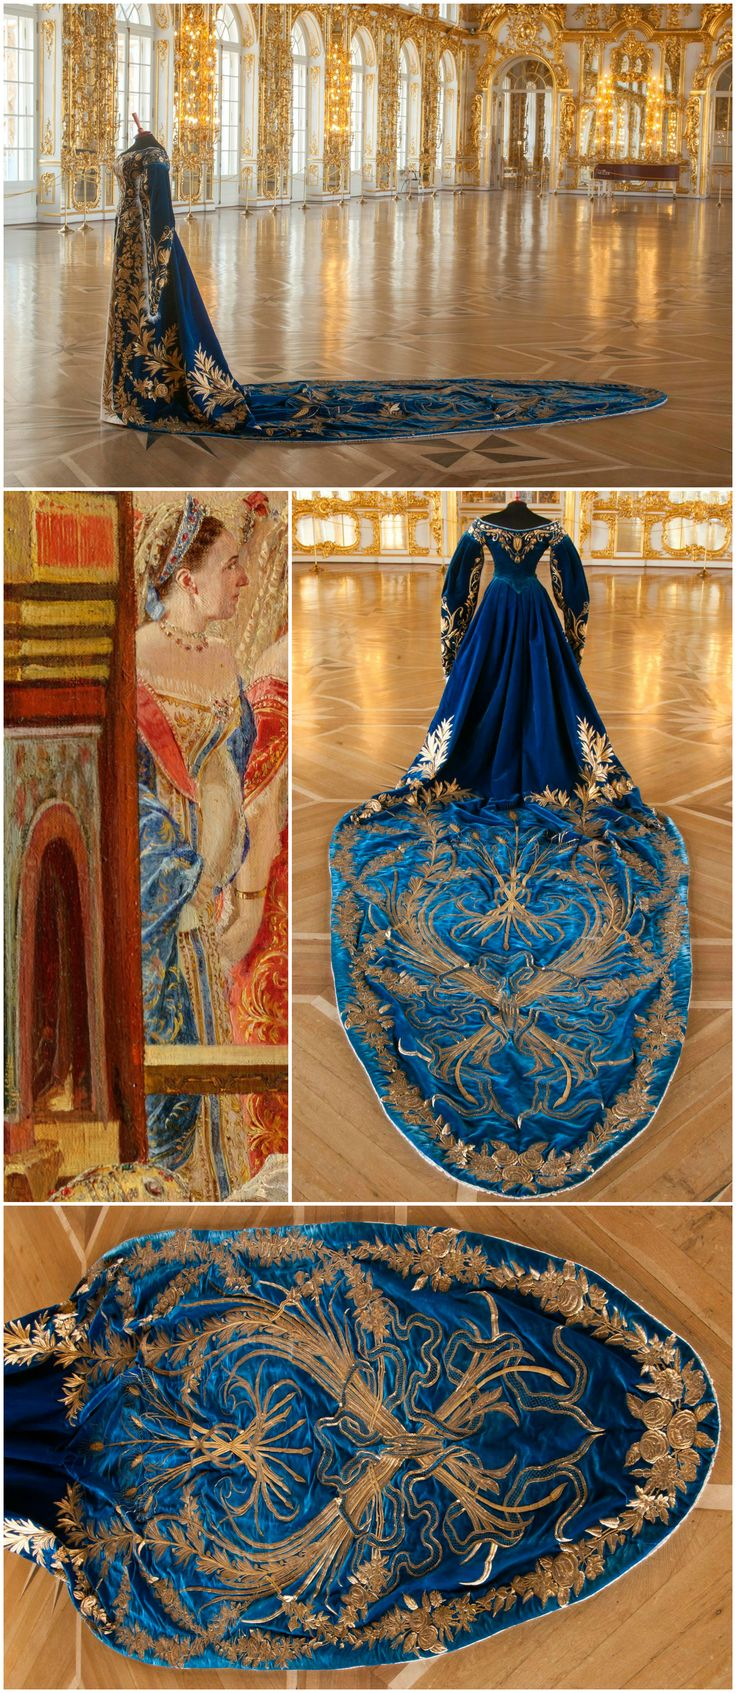 """Court gown belonging to Grand Duchess Xenia Alexandrovna (sister of Tsar Nicholas II), late 19th - early 20th century. Collection of the State Museum """"Tsarskoye Selo."""" Photos via the Tsarskoye Selo State Museum-Preserve on Facebook. Detail from Georges Becker's 1888 painting depicting the coronation of Tsar Alexander III and Empress Maria Fyodorovna, May 15, 1883, collection of the State Hermitage Museum (via http://hermitage.guide/costume/costume1.html)."""